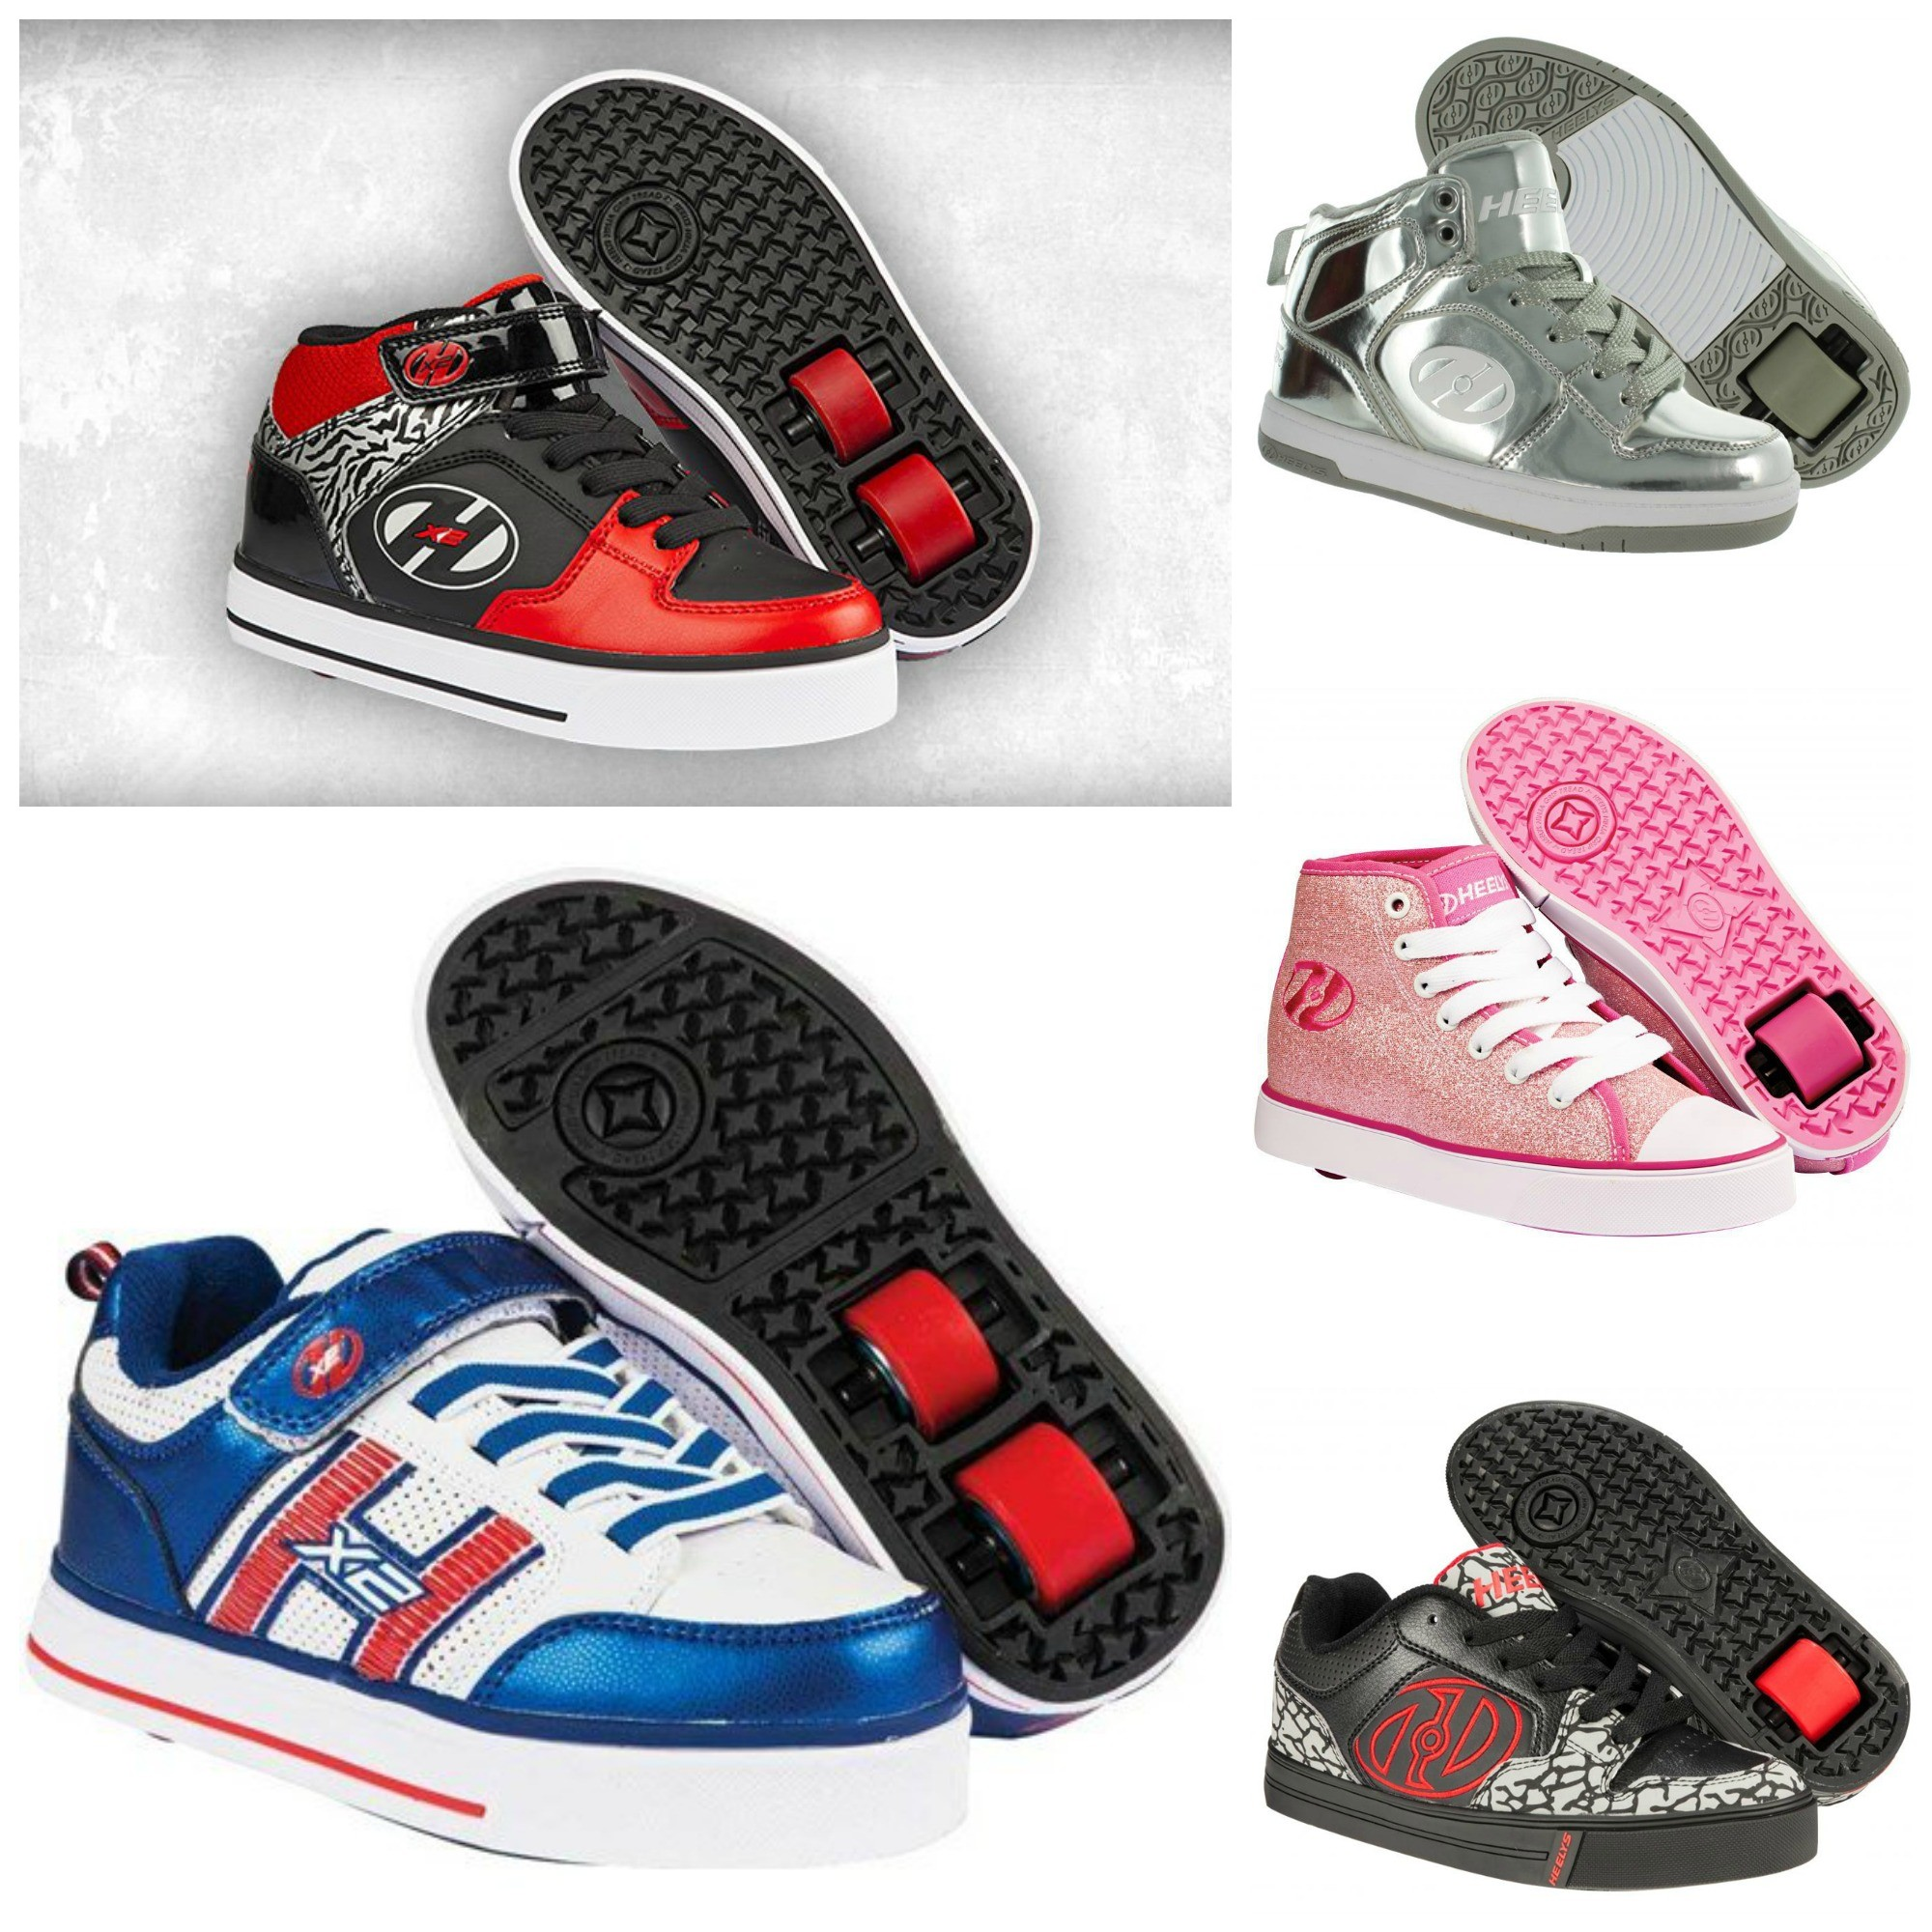 chaussures heelys 2 roues